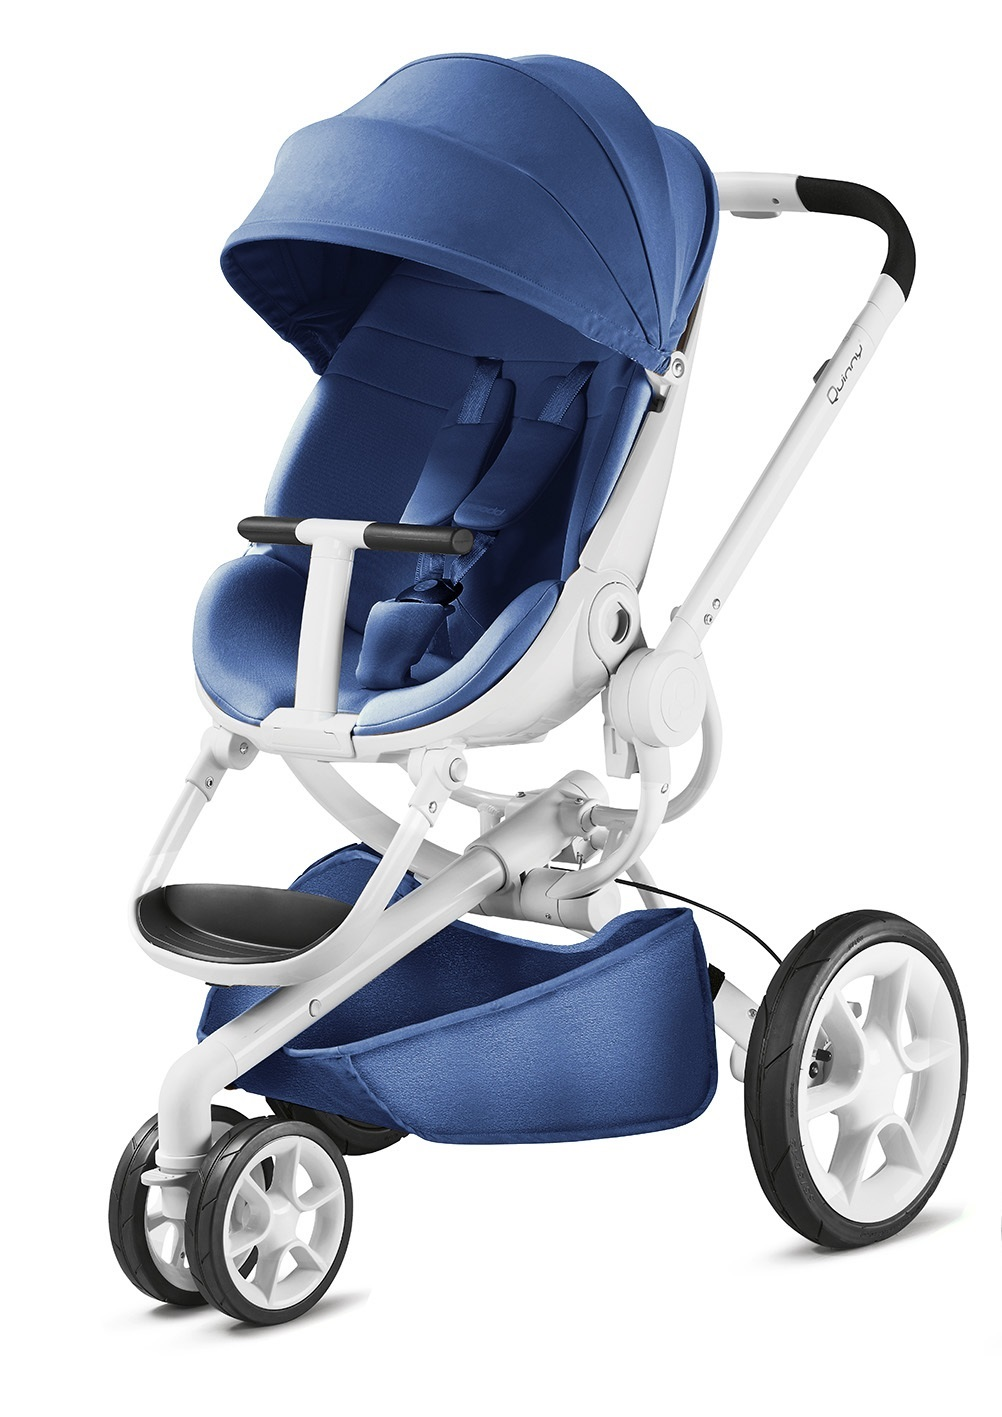 quinny moodd stroller 2018 blue base white buy at. Black Bedroom Furniture Sets. Home Design Ideas